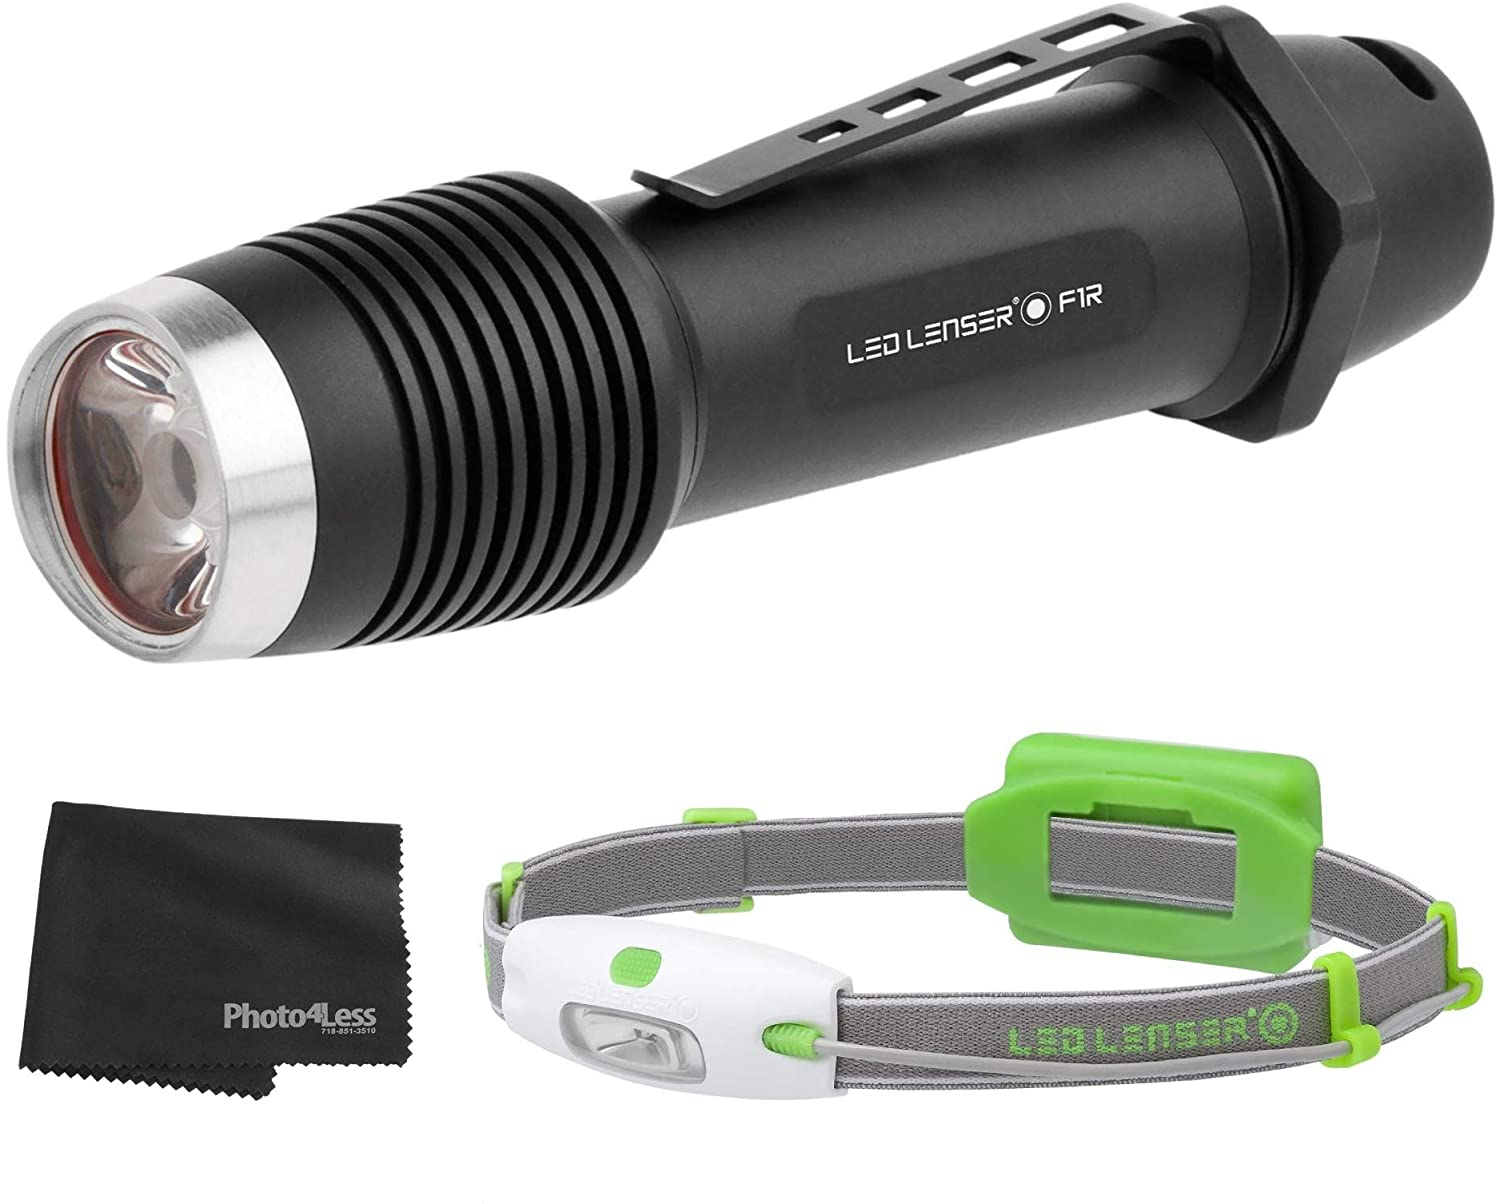 LEDLENSER F1R Rechargeable LED Flashlight, 1,000 Lumen, Black + Running Sport Neo H4 Headlamp Wide Beam, 90 Lumens and Lens Cleaning Cloth